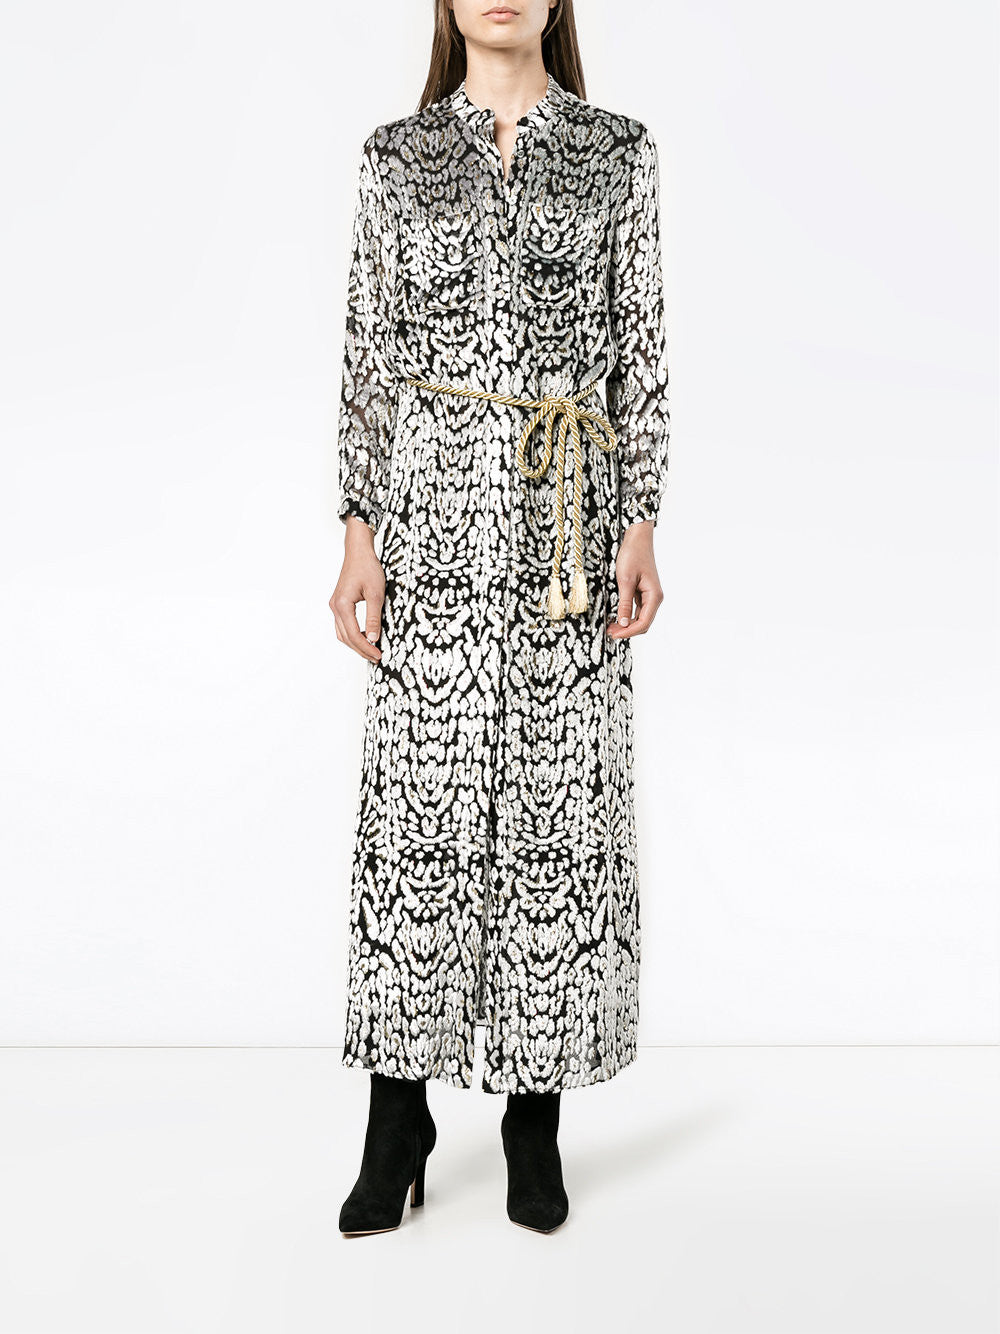 Ocelot Velvet Shirt Dress with Stand Collar